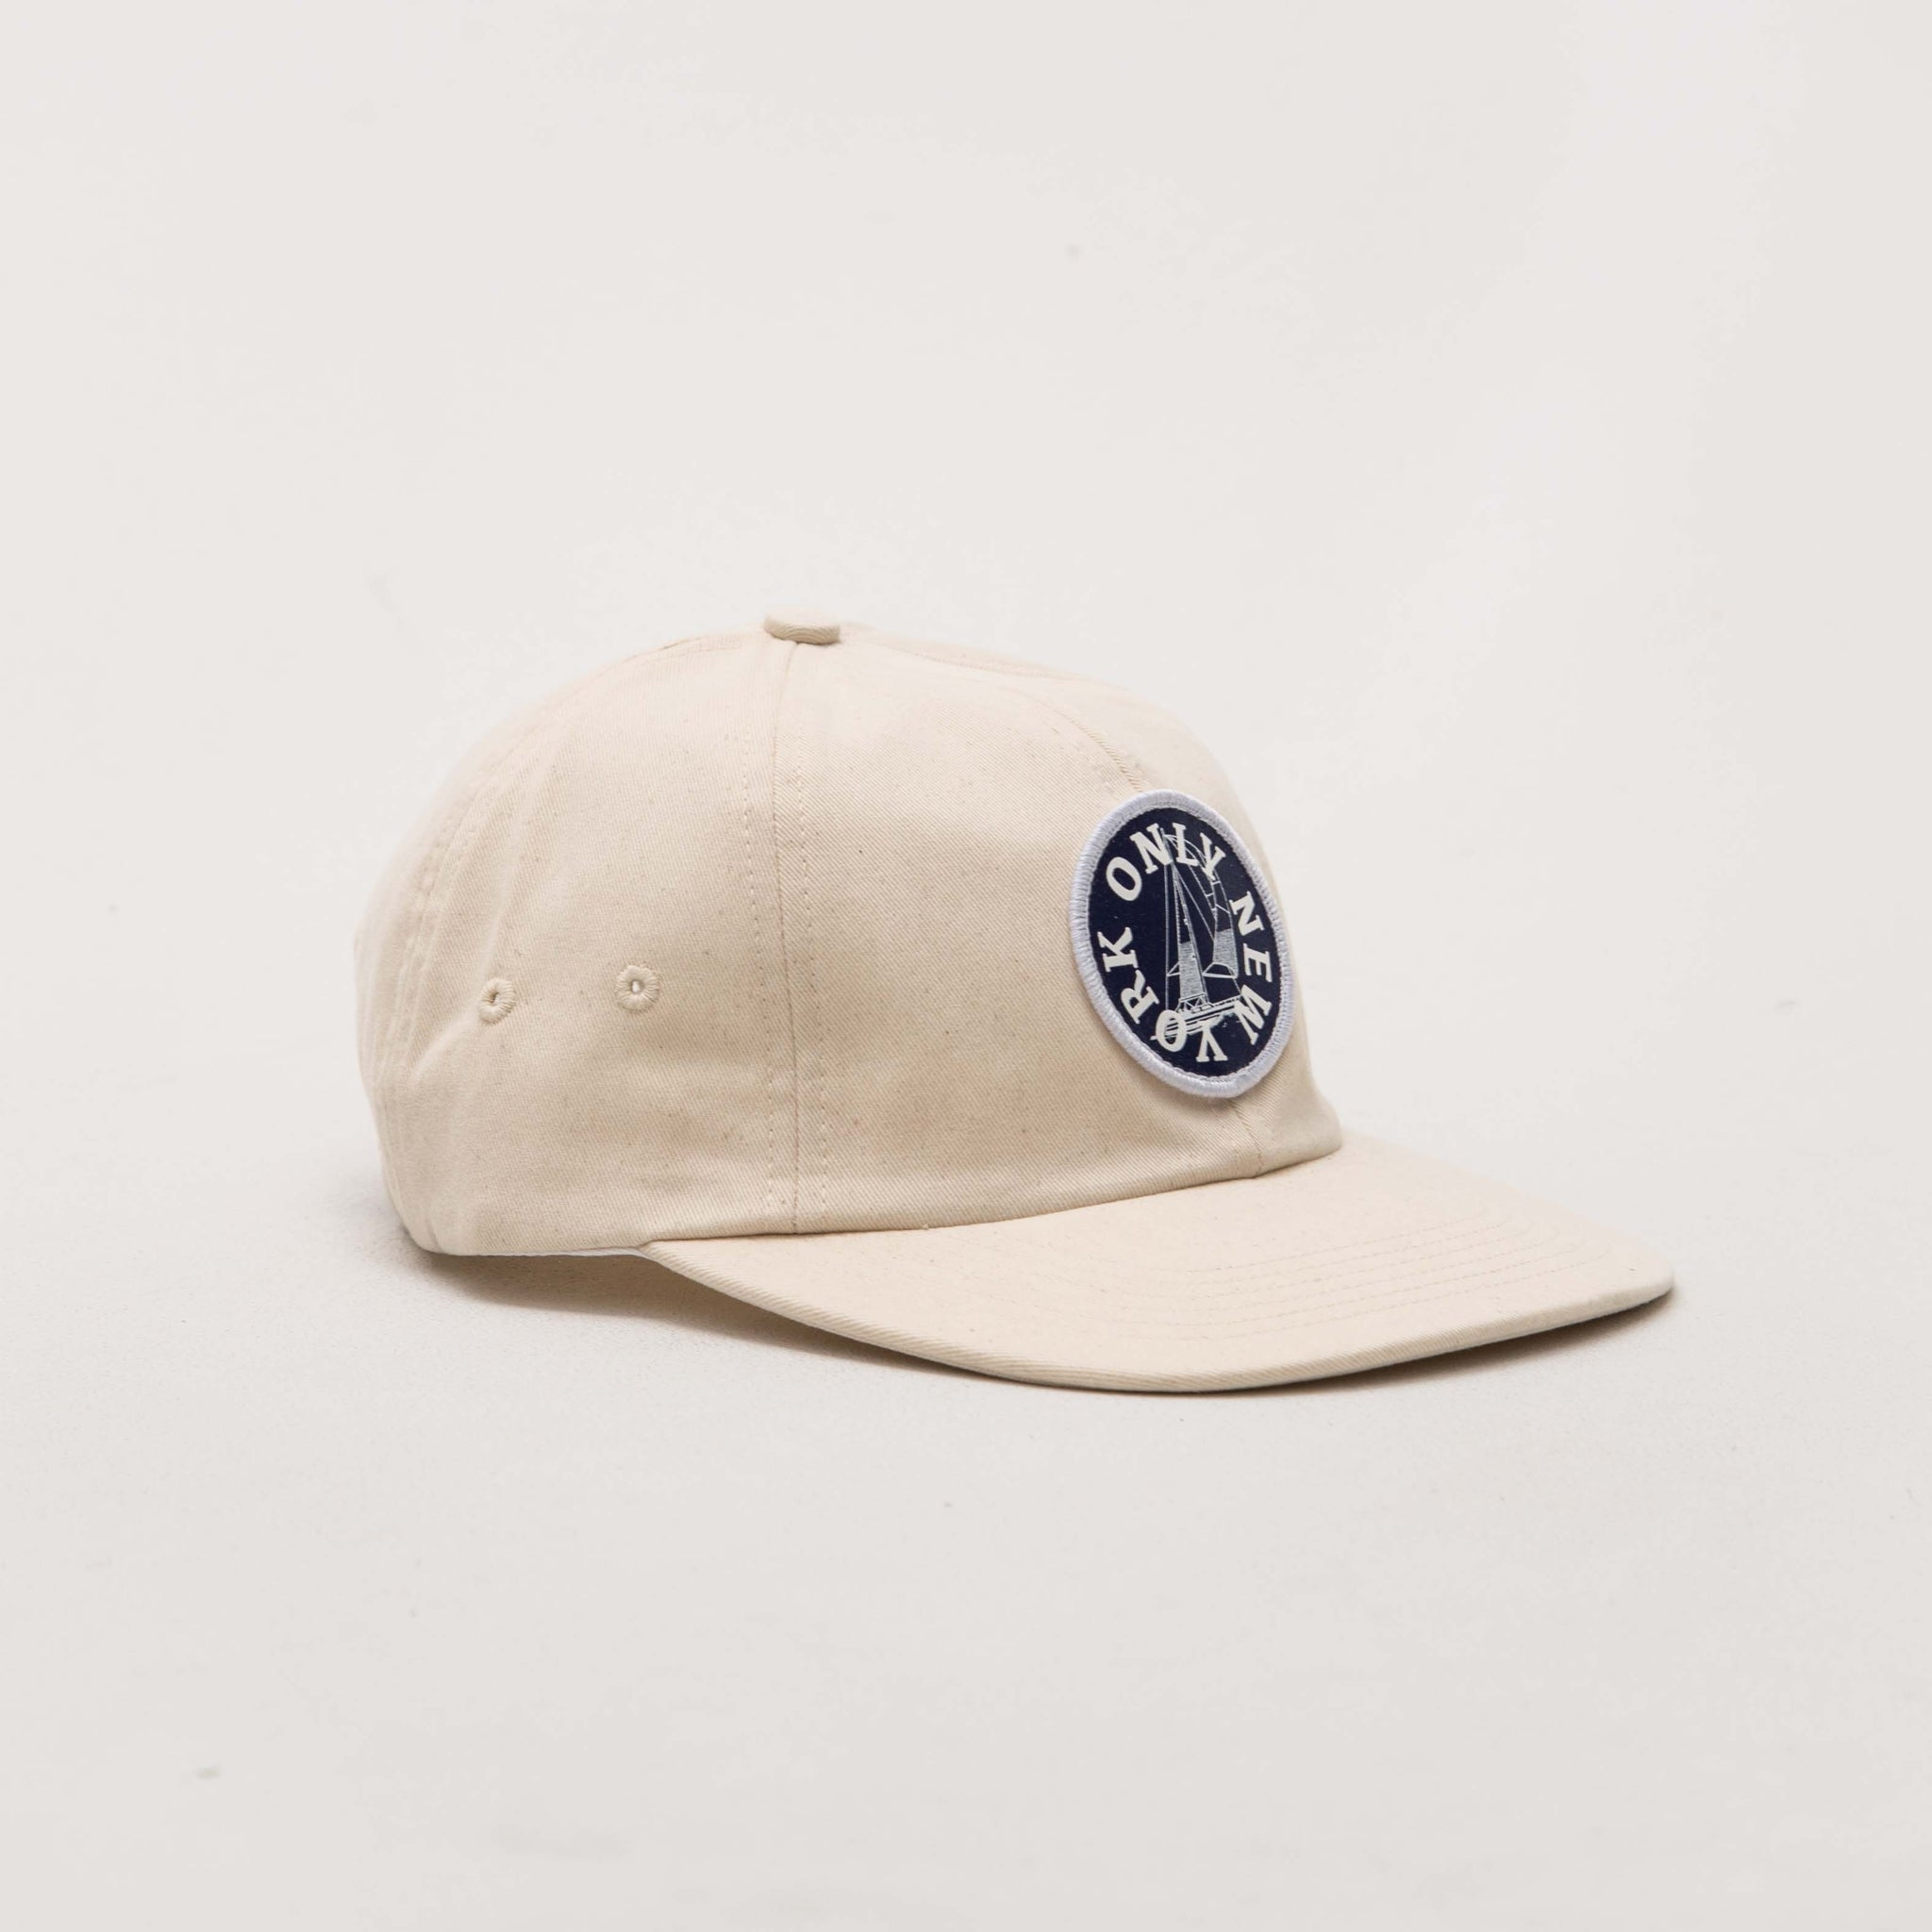 Only NY Newport Polo Hat - Natural | AStore